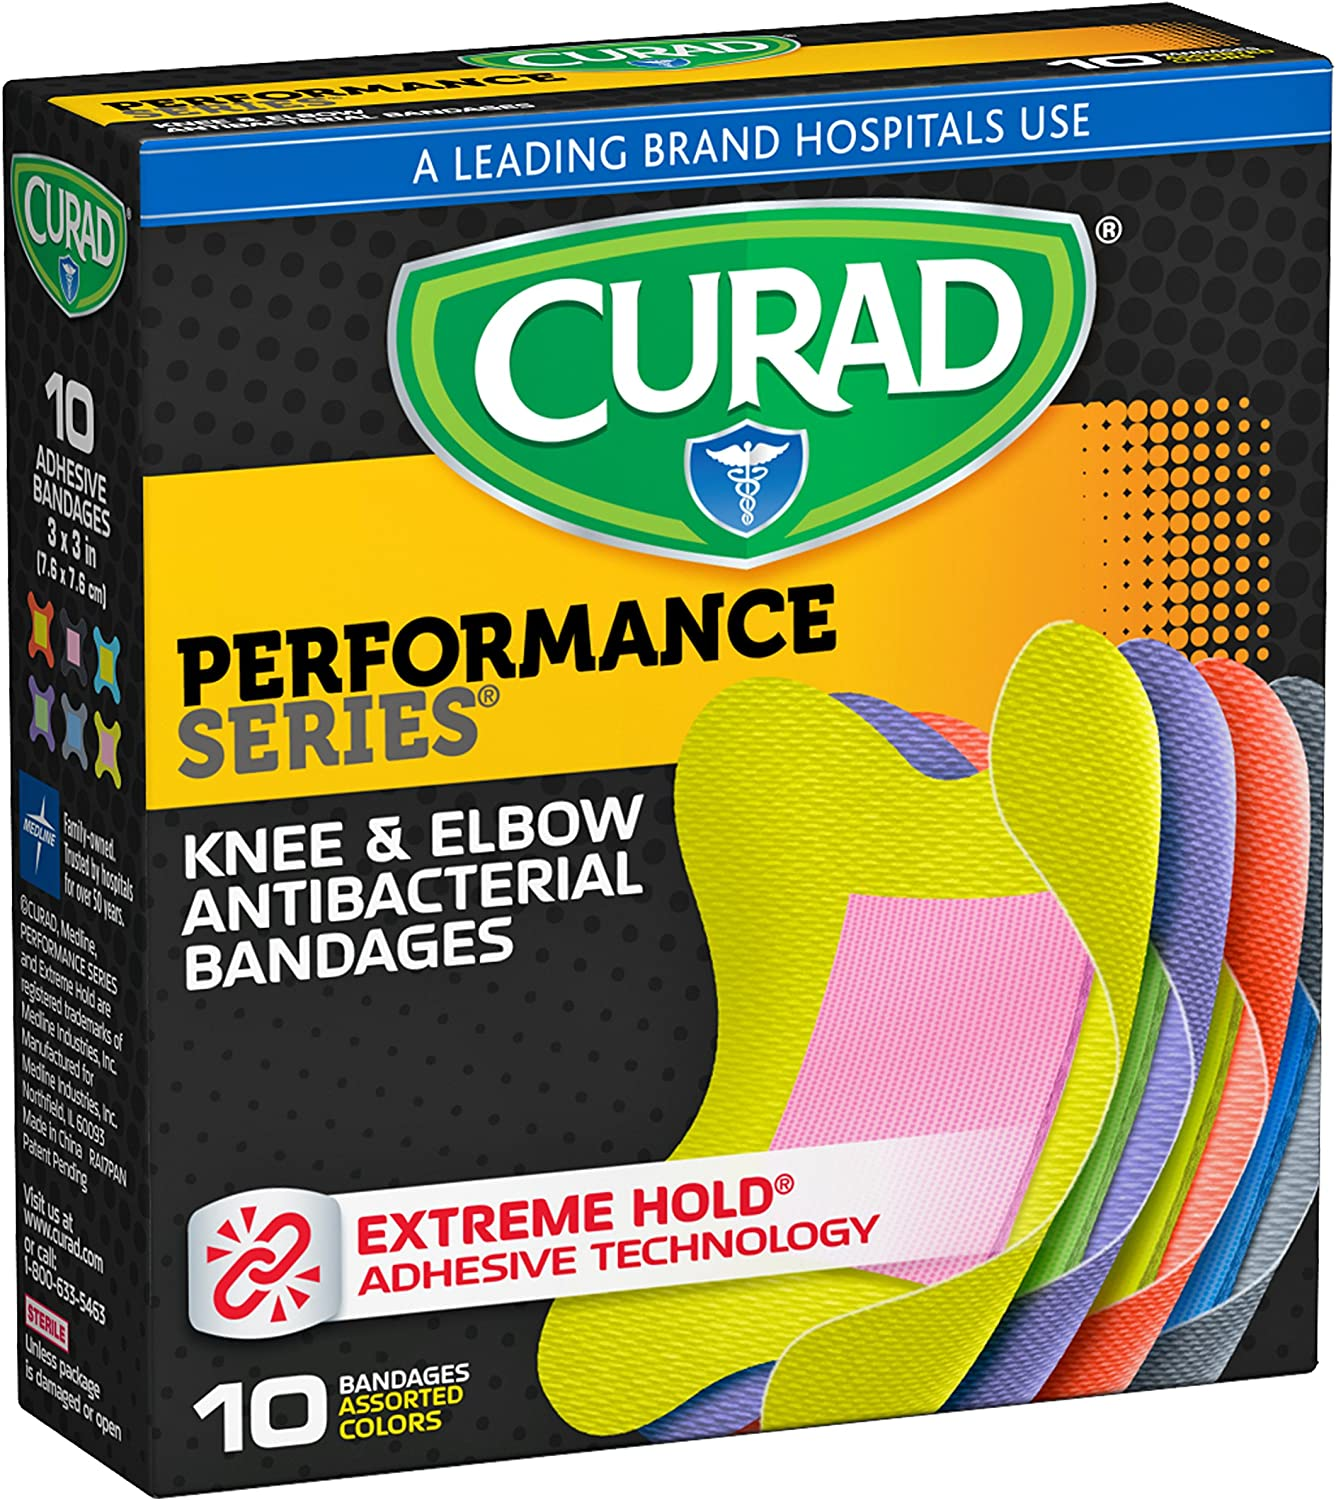 Curad Performance Series Knee and Elbow Extreme Hold Antibacterial Fabric Bandages, 10 Count